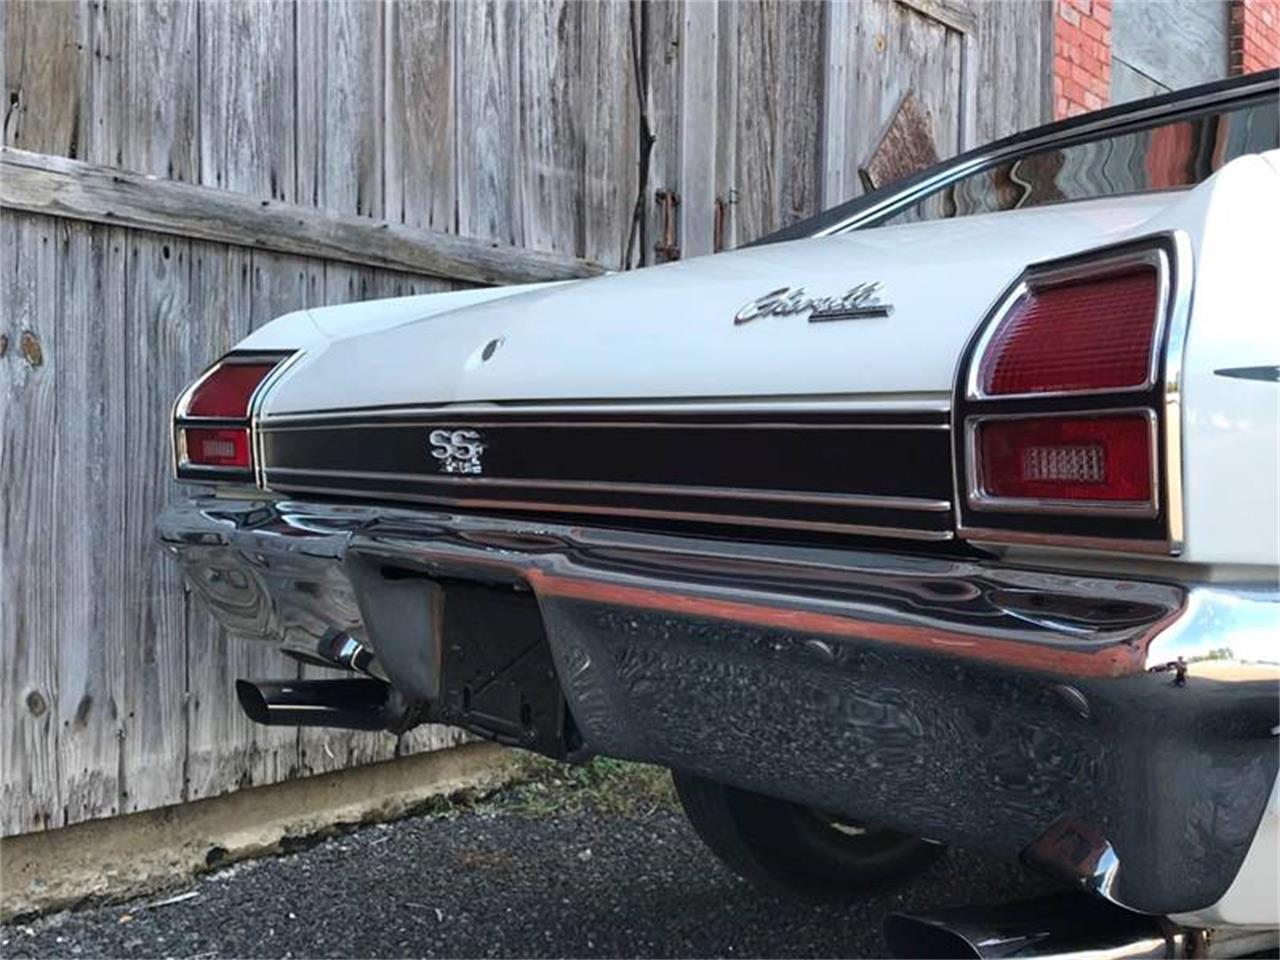 1969 Chevrolet Chevelle for sale in Orville, OH – photo 32